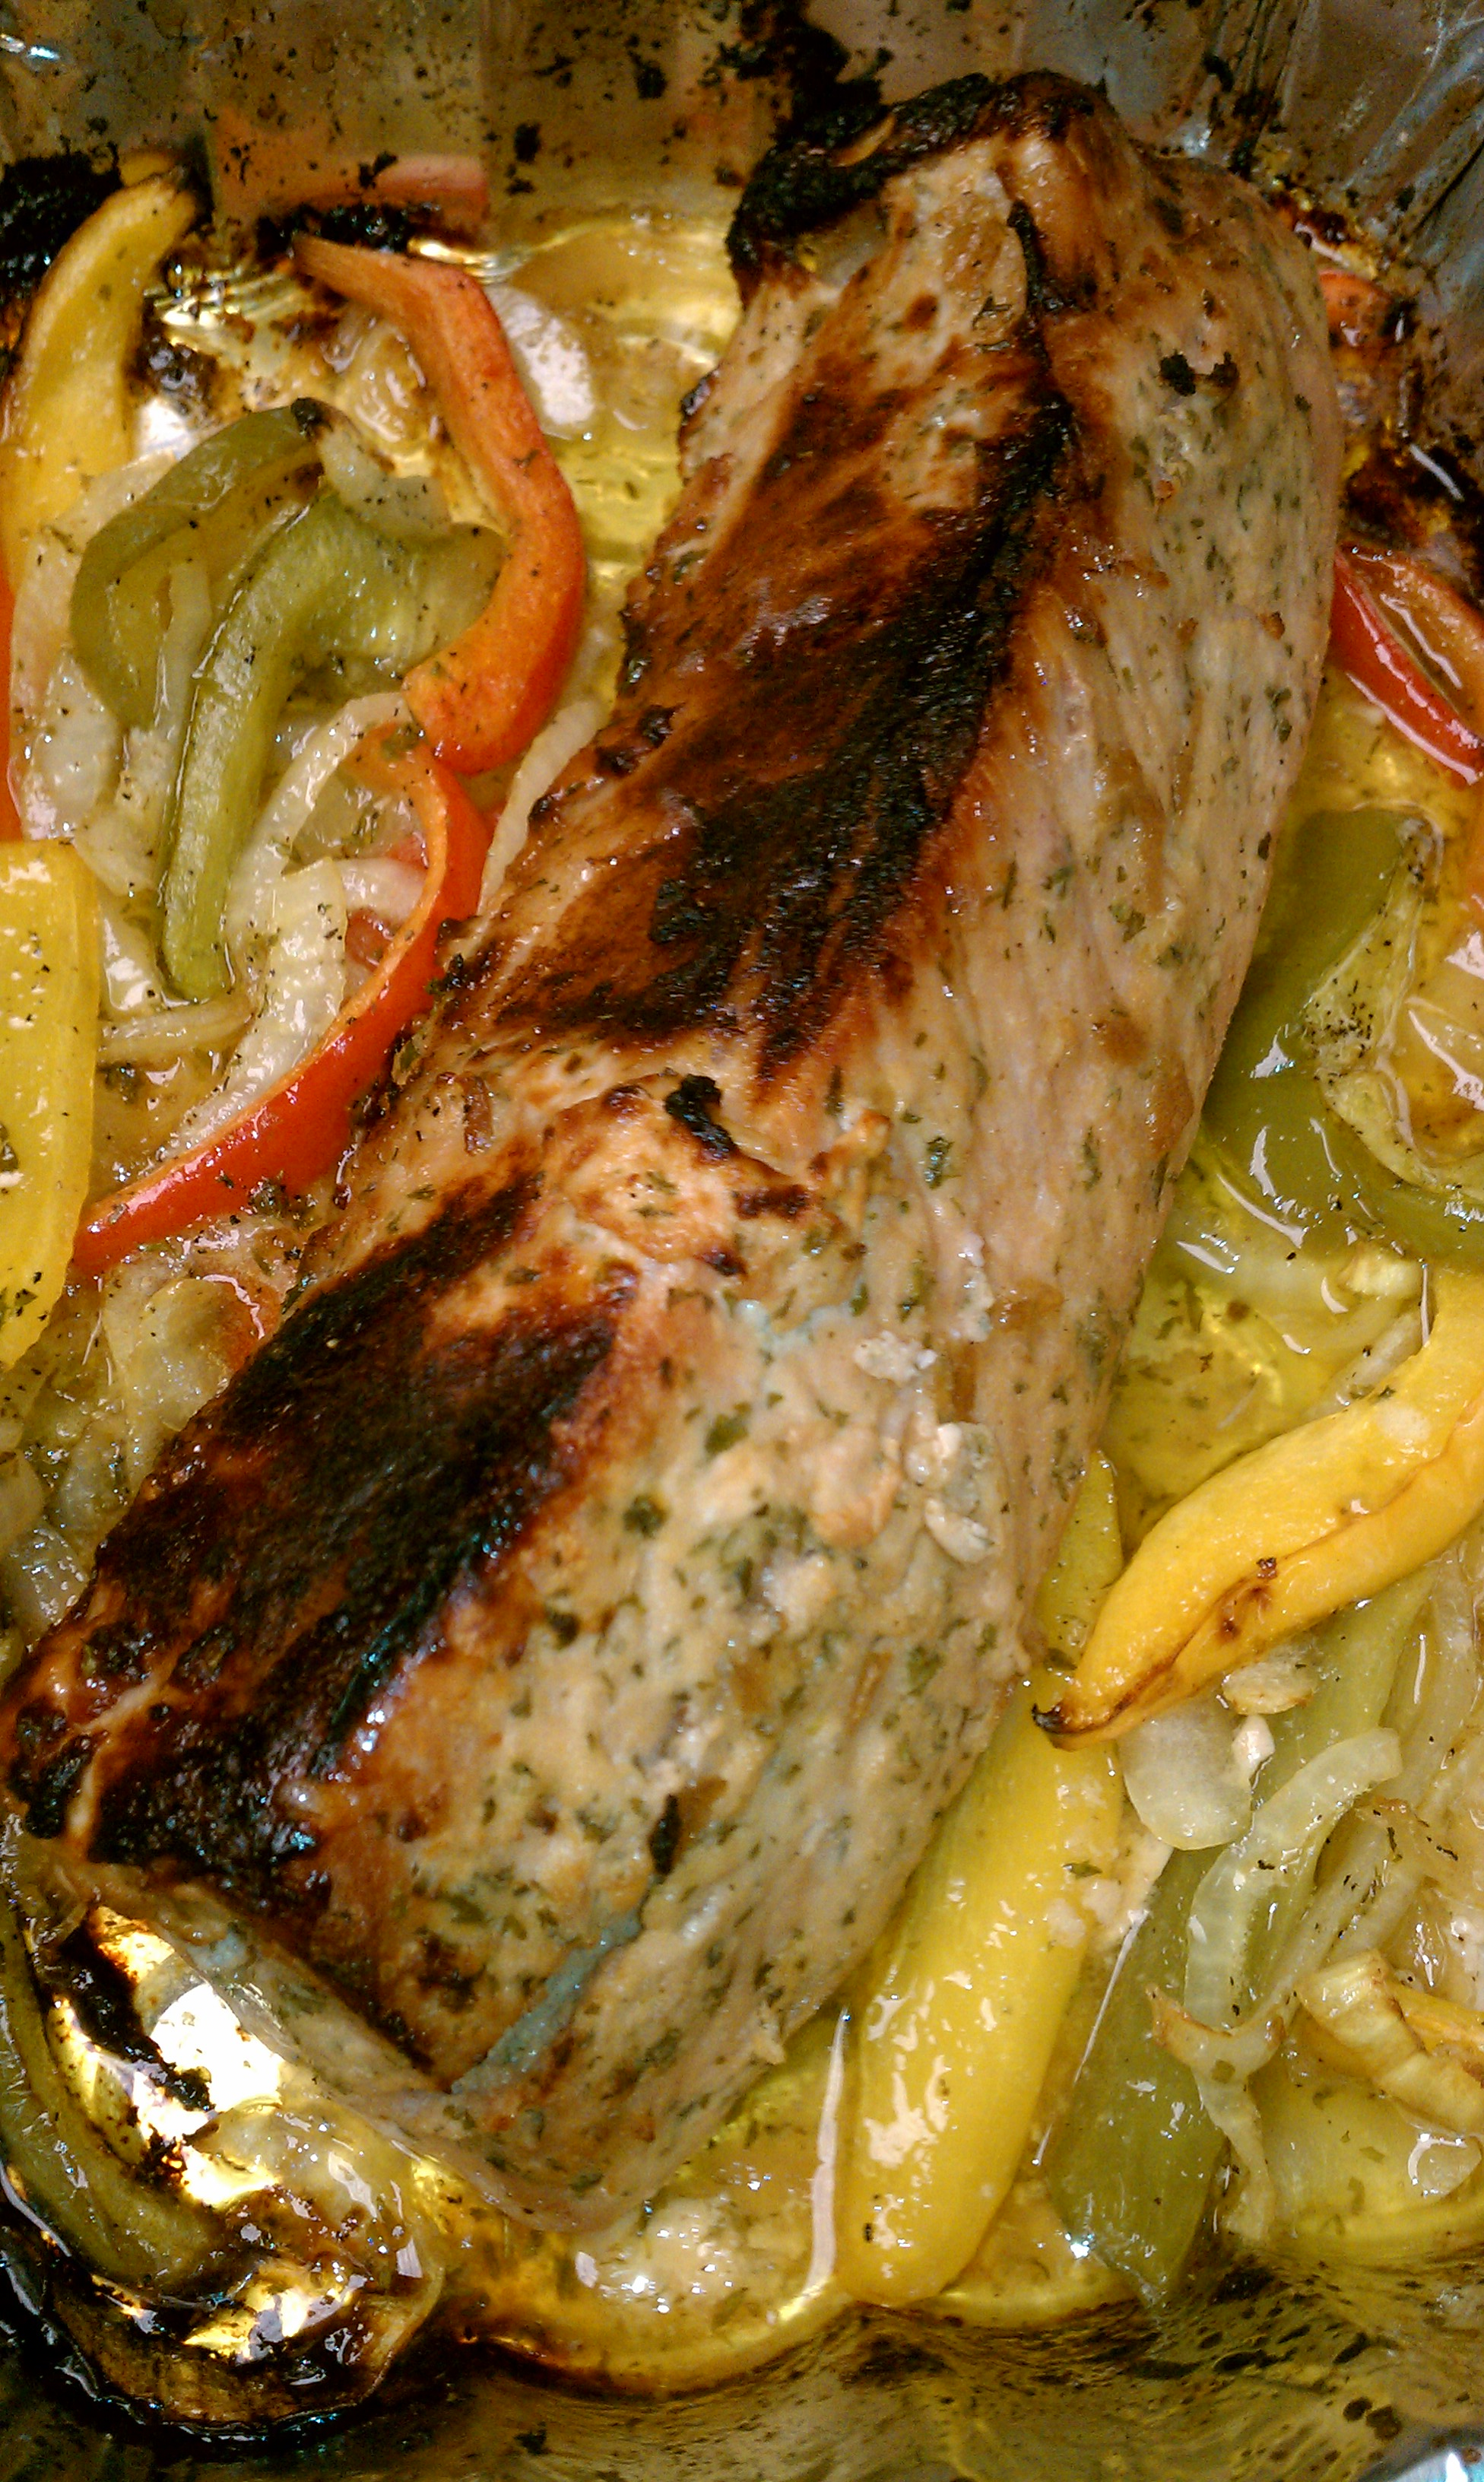 ALLENTOWN,PA :: lemon,pepper,fresh garlic,onions,green, yellow & red peppers roasted pork loin :] mmMmMmm